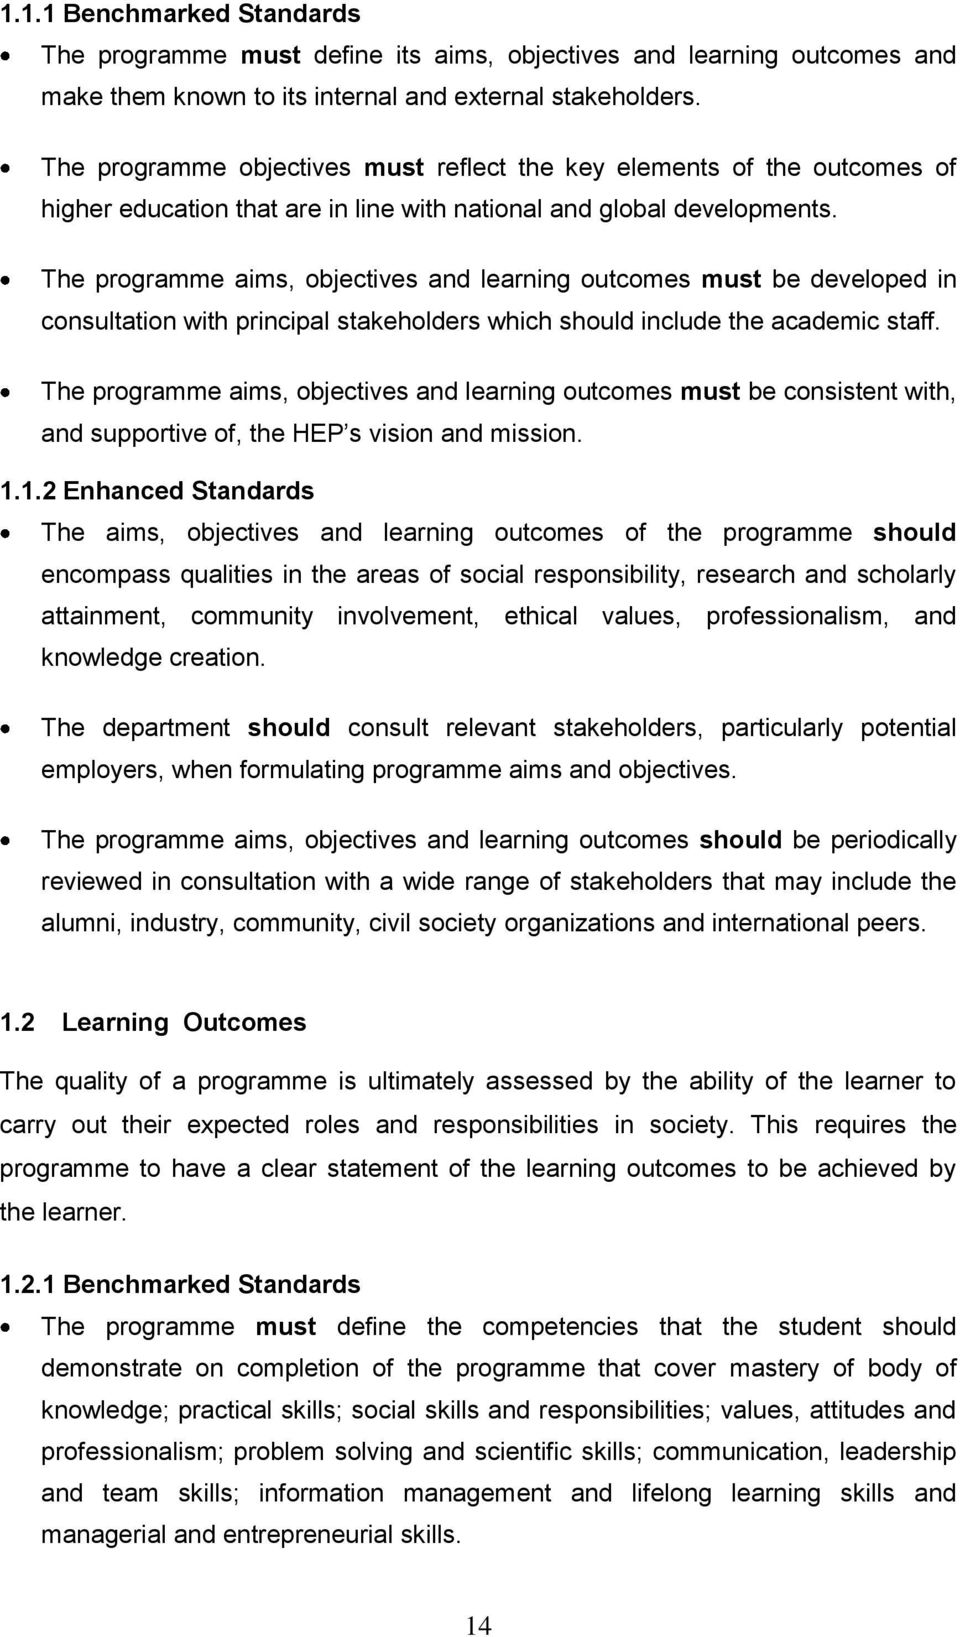 The prgramme aims, bjectives and learning utcmes must be develped in cnsultatin with principal stakehlders which shuld include the academic staff.